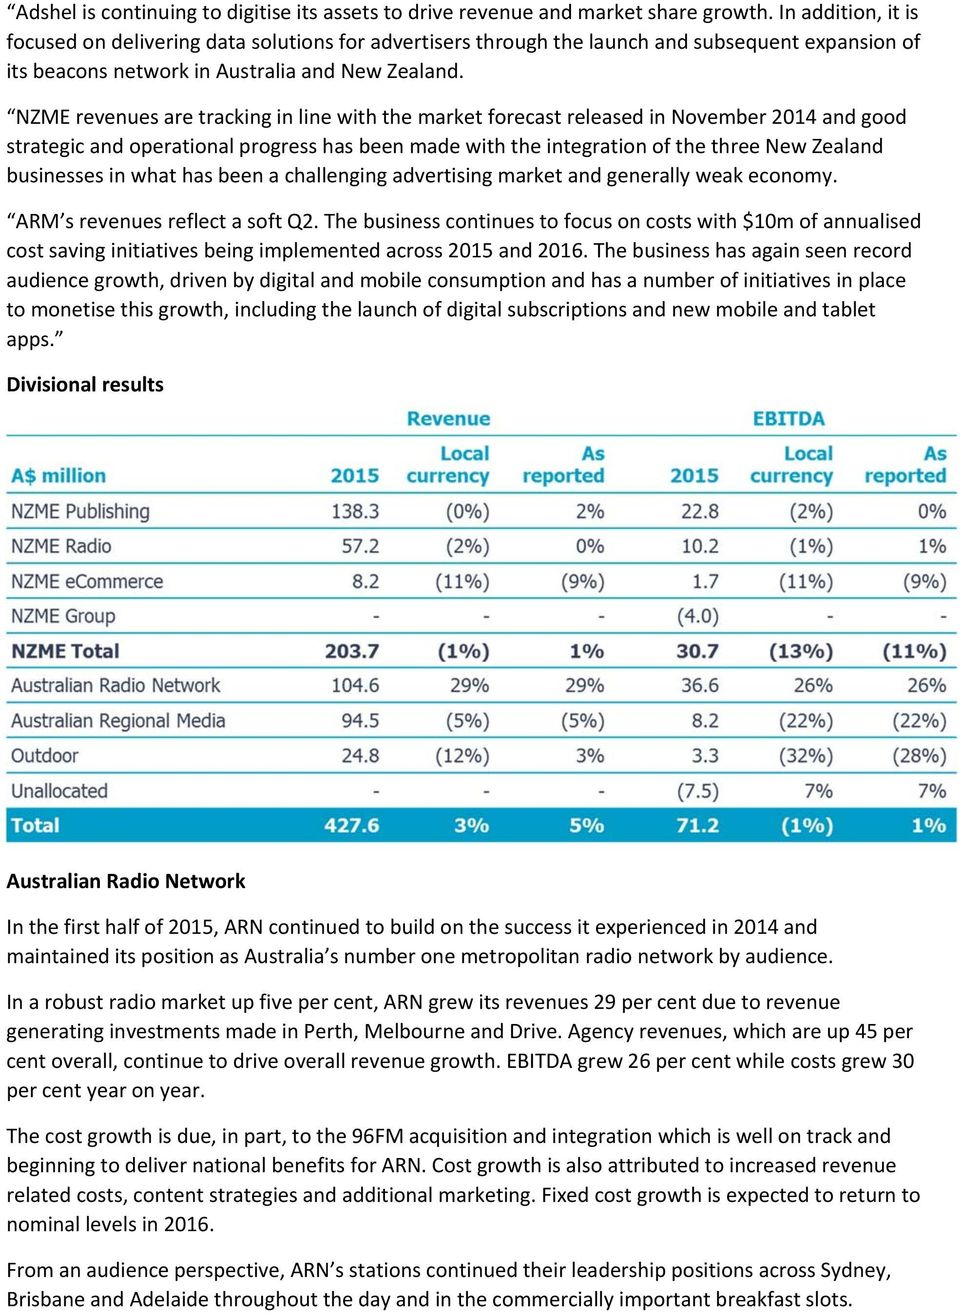 NZME revenues are tracking in line with the market forecast released in November 2014 and good strategic and operational progress has been made with the integration of the three New Zealand